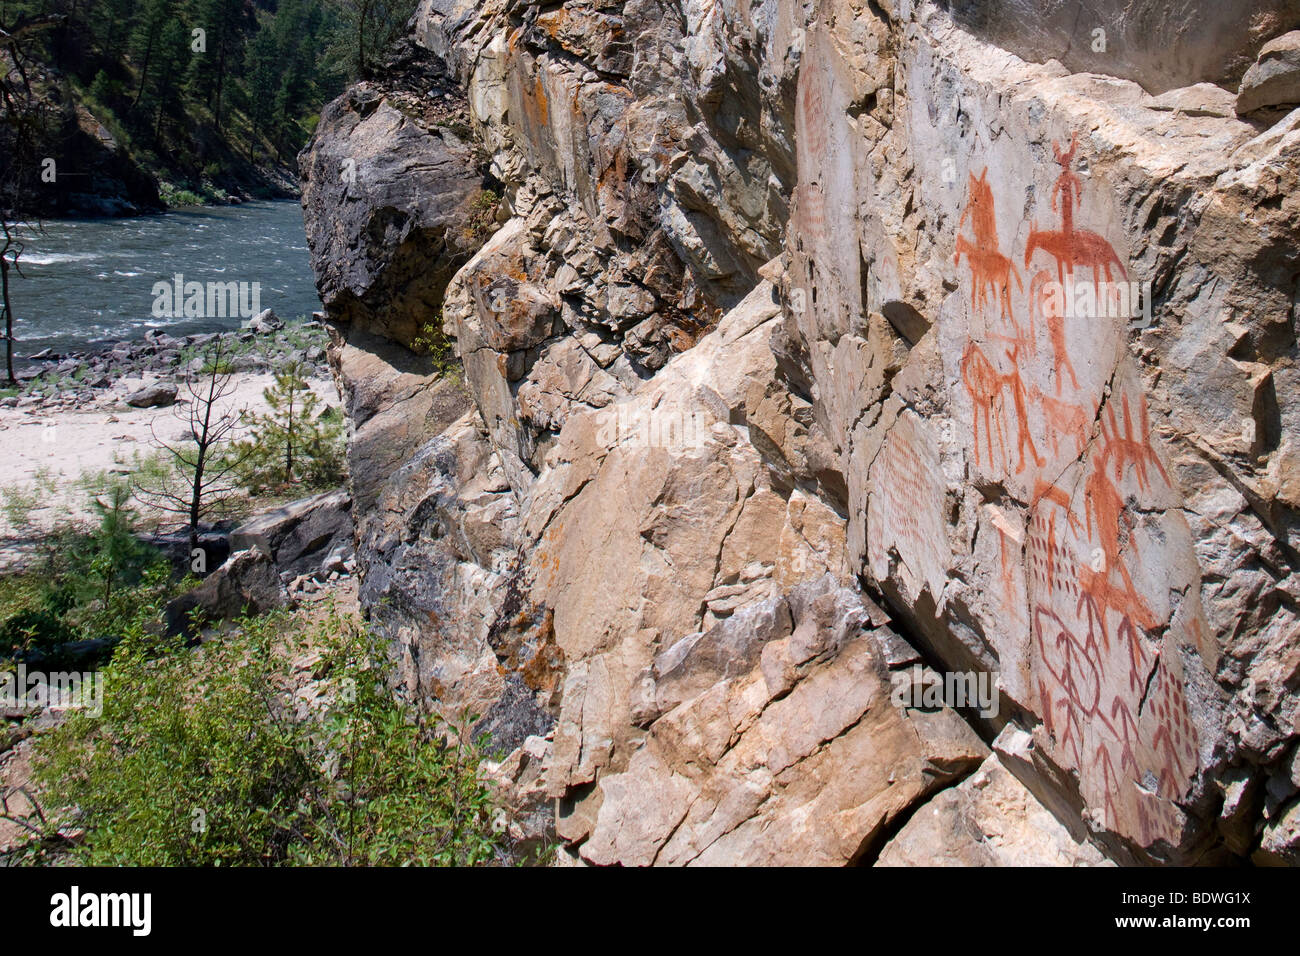 Pictographs at Legend Creek camp along the Salmon River, bring evidence of an ancient past. - Stock Image